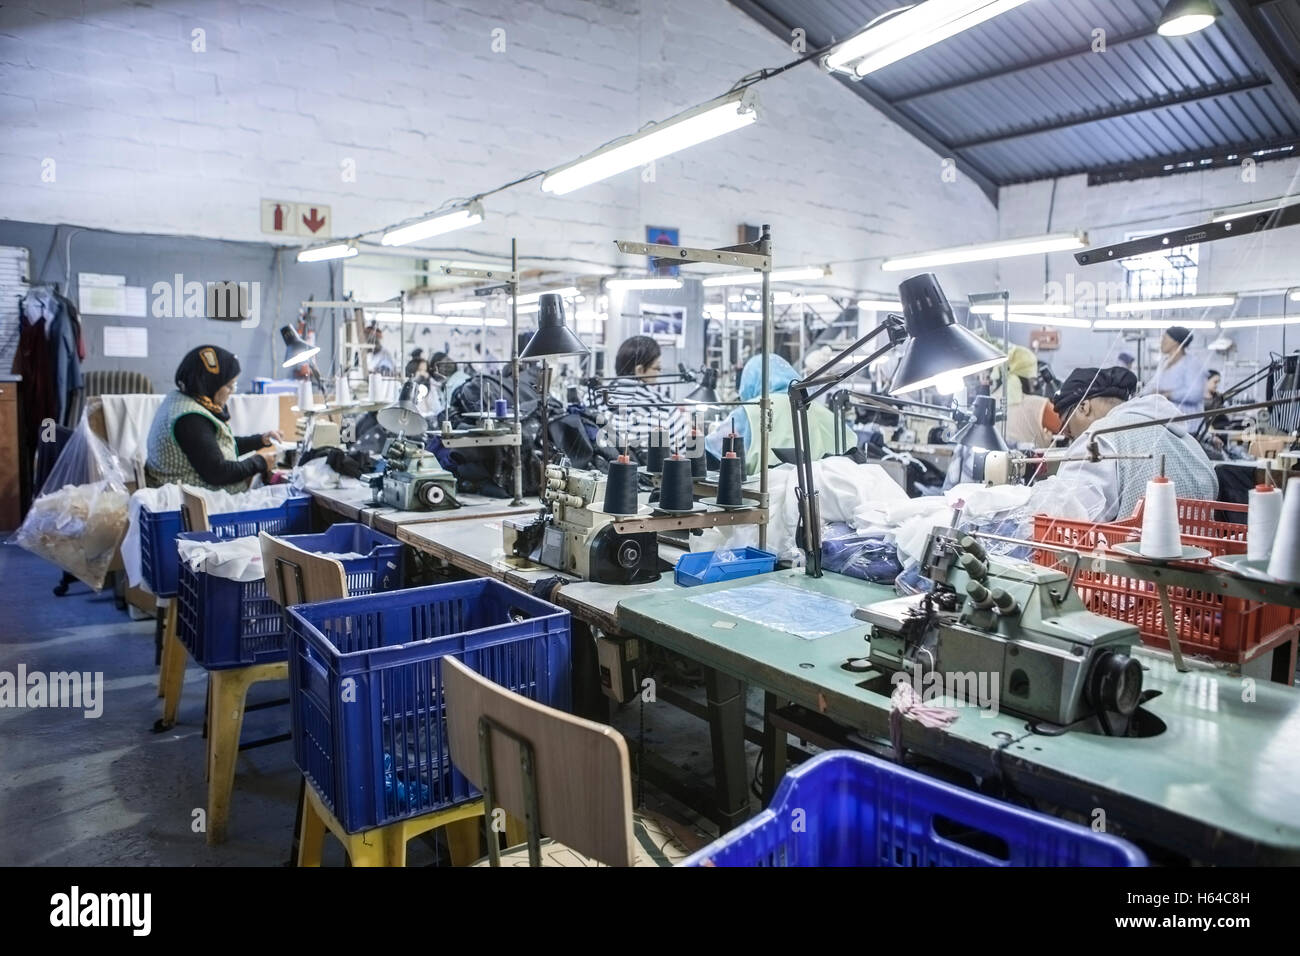 Seamstresses in factory sewing clothes - Stock Image